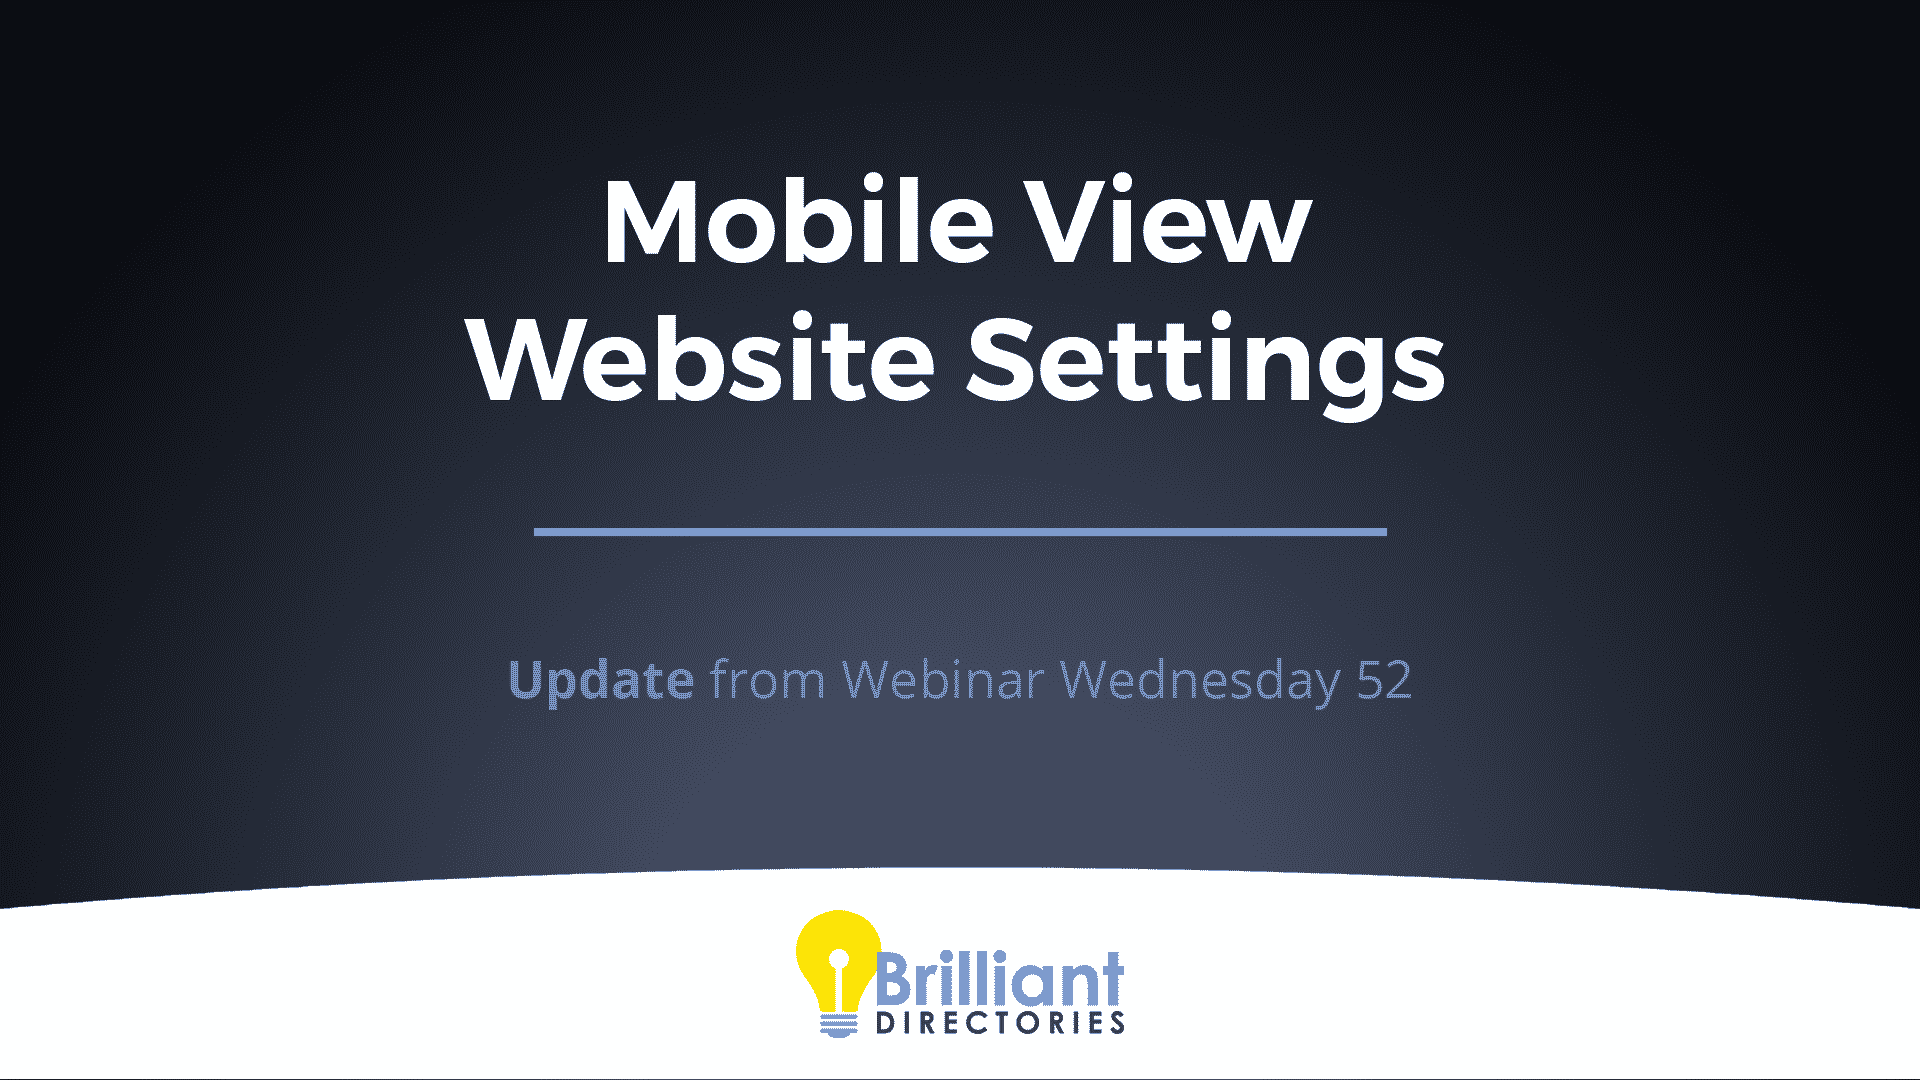 https://www.brilliantdirectories.com/blog/easy-settings-to-optimize-your-website-for-mobile-devices-directory-website-tips